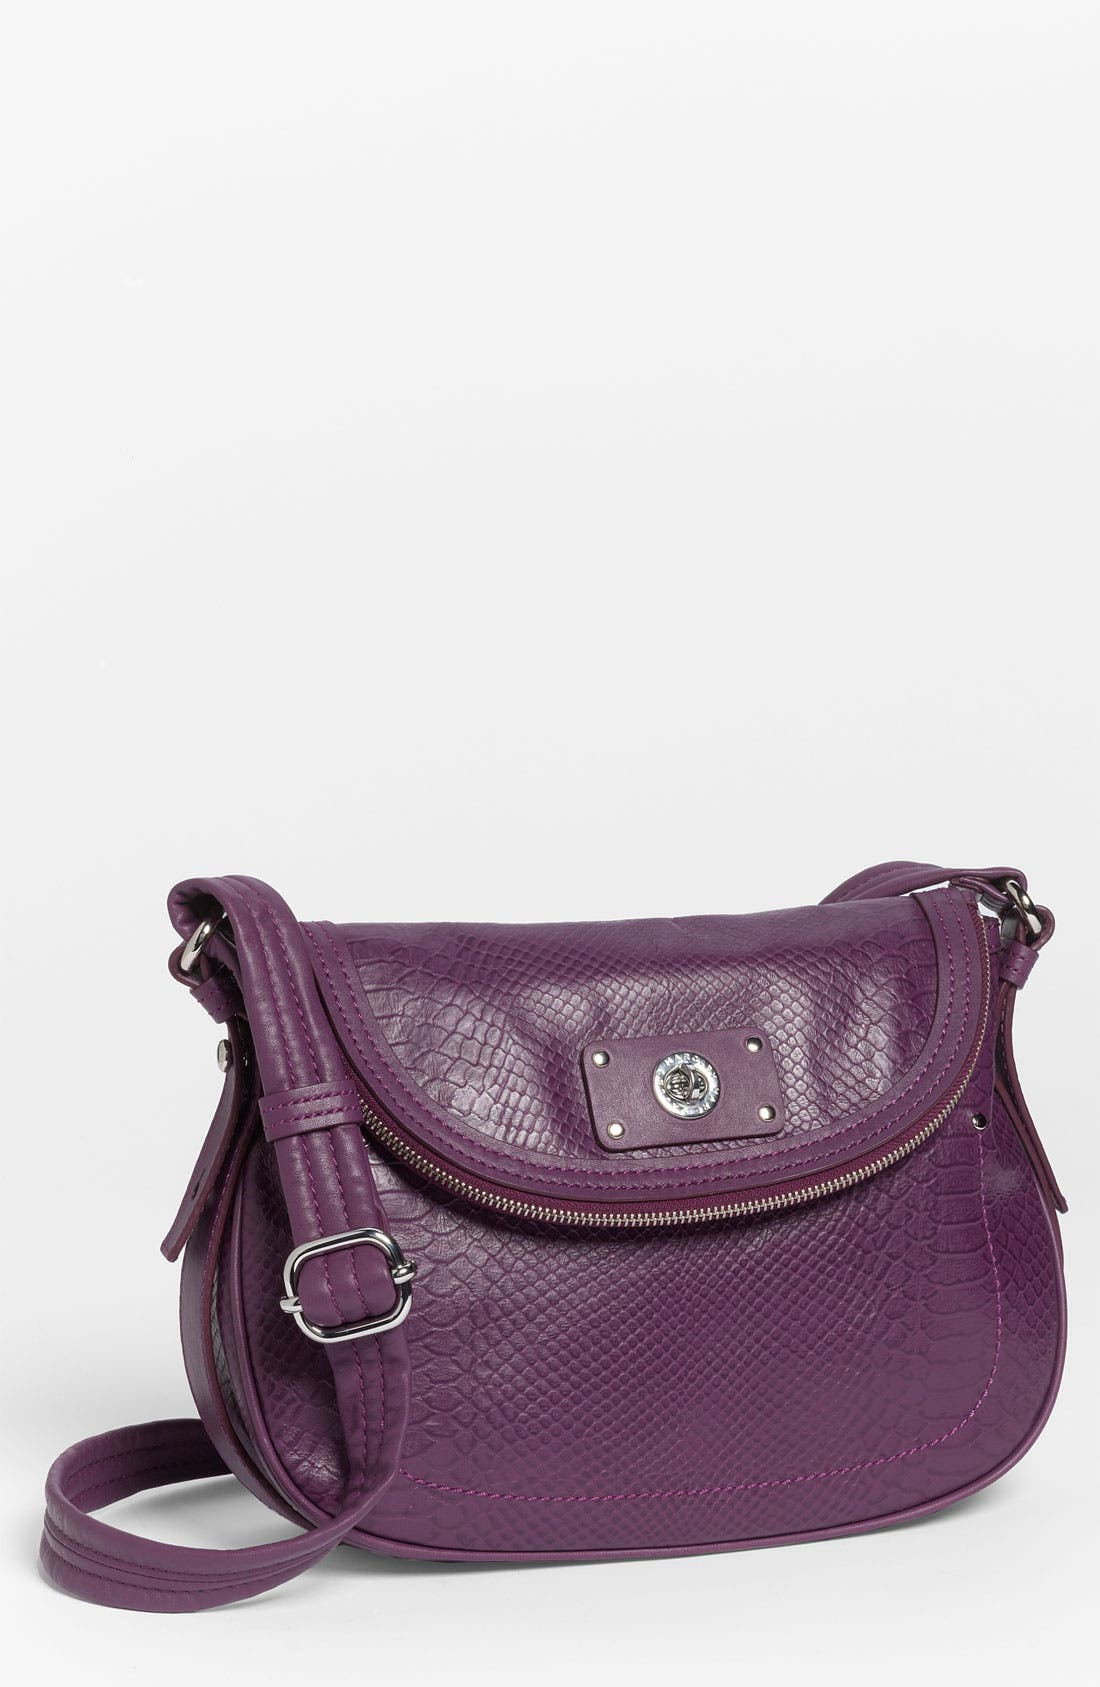 Alternate Image 1 Selected - MARC BY MARC JACOBS 'Totally Turnlock - Natasha' Python Embossed Crossbody Bag